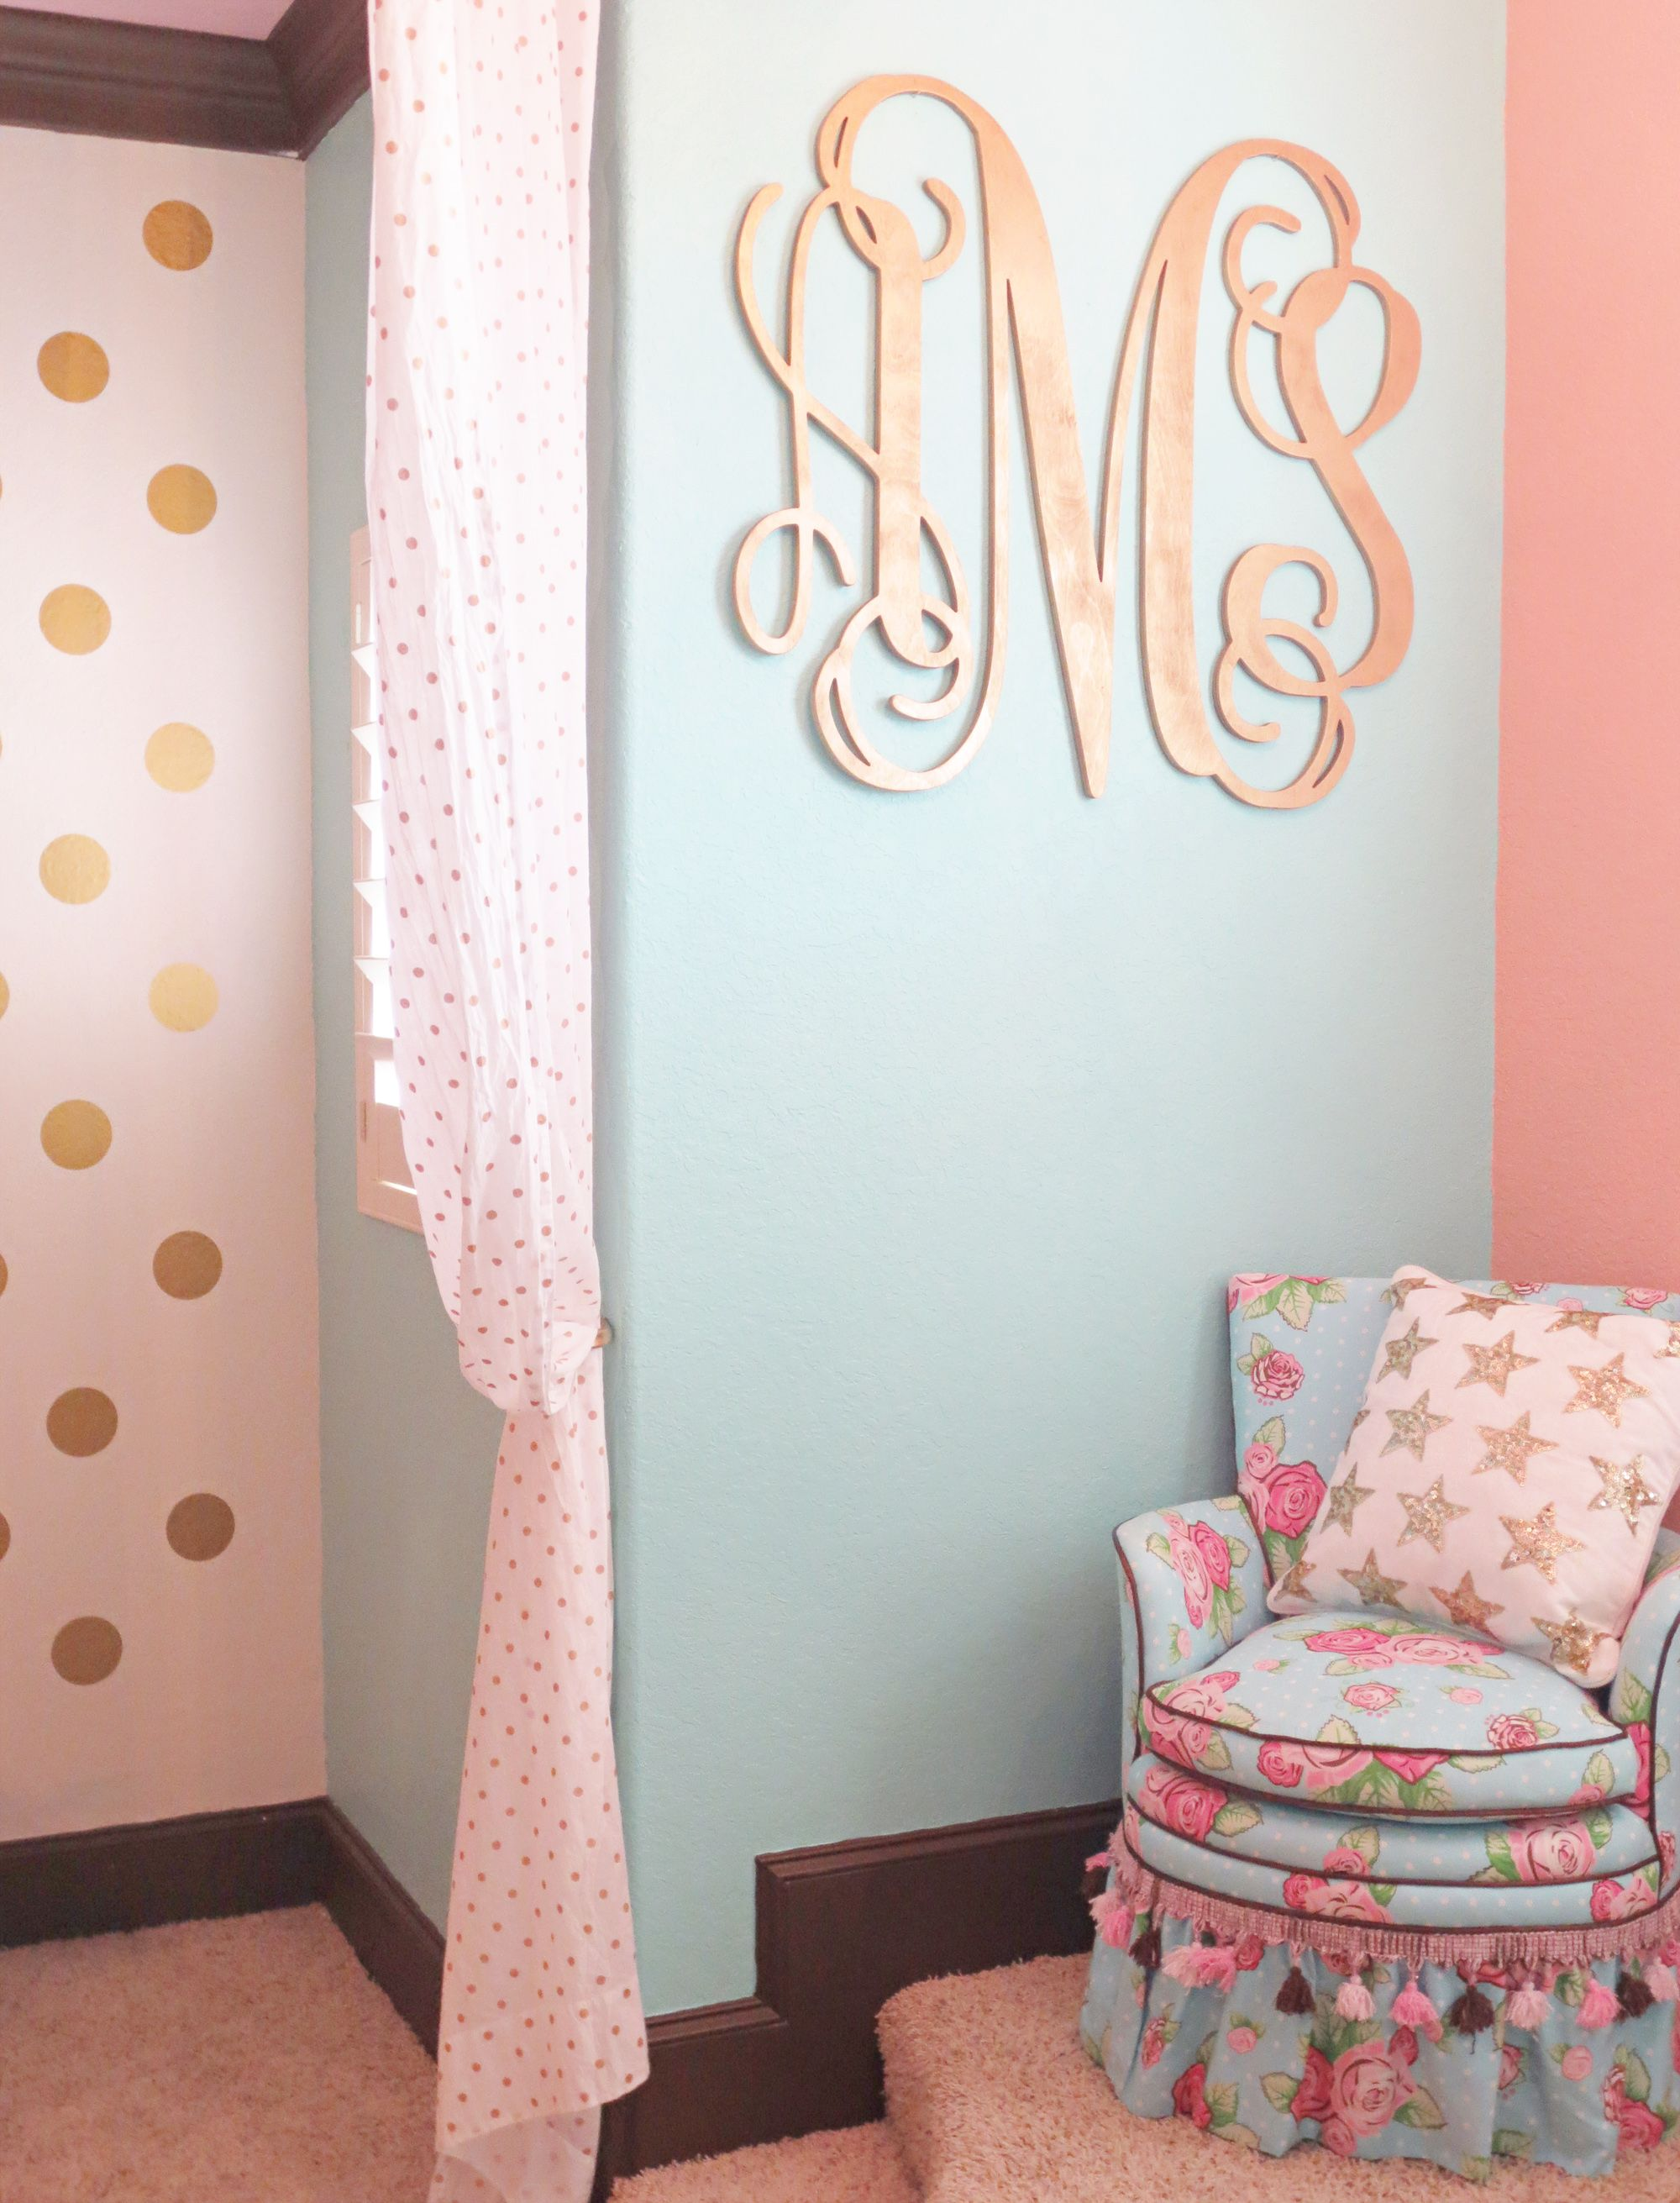 Light Coral Walls Coral Mint And Gold Room Design Wood Monogram Gold Glitter